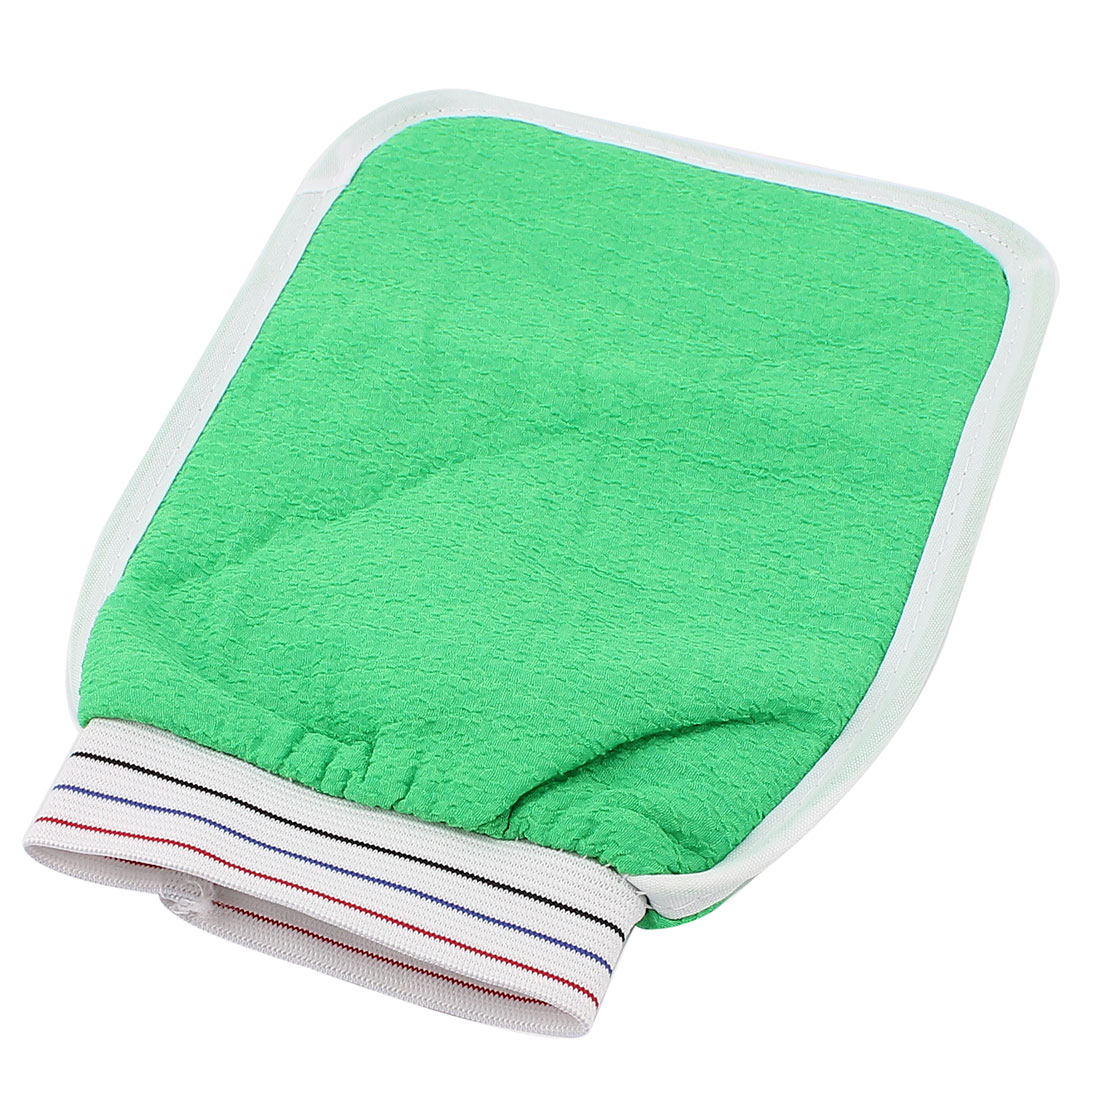 Unique Bargains Elastic Cuff Double Side Shower Bath Washing Massage Glove Scrubber Green for Home Essential